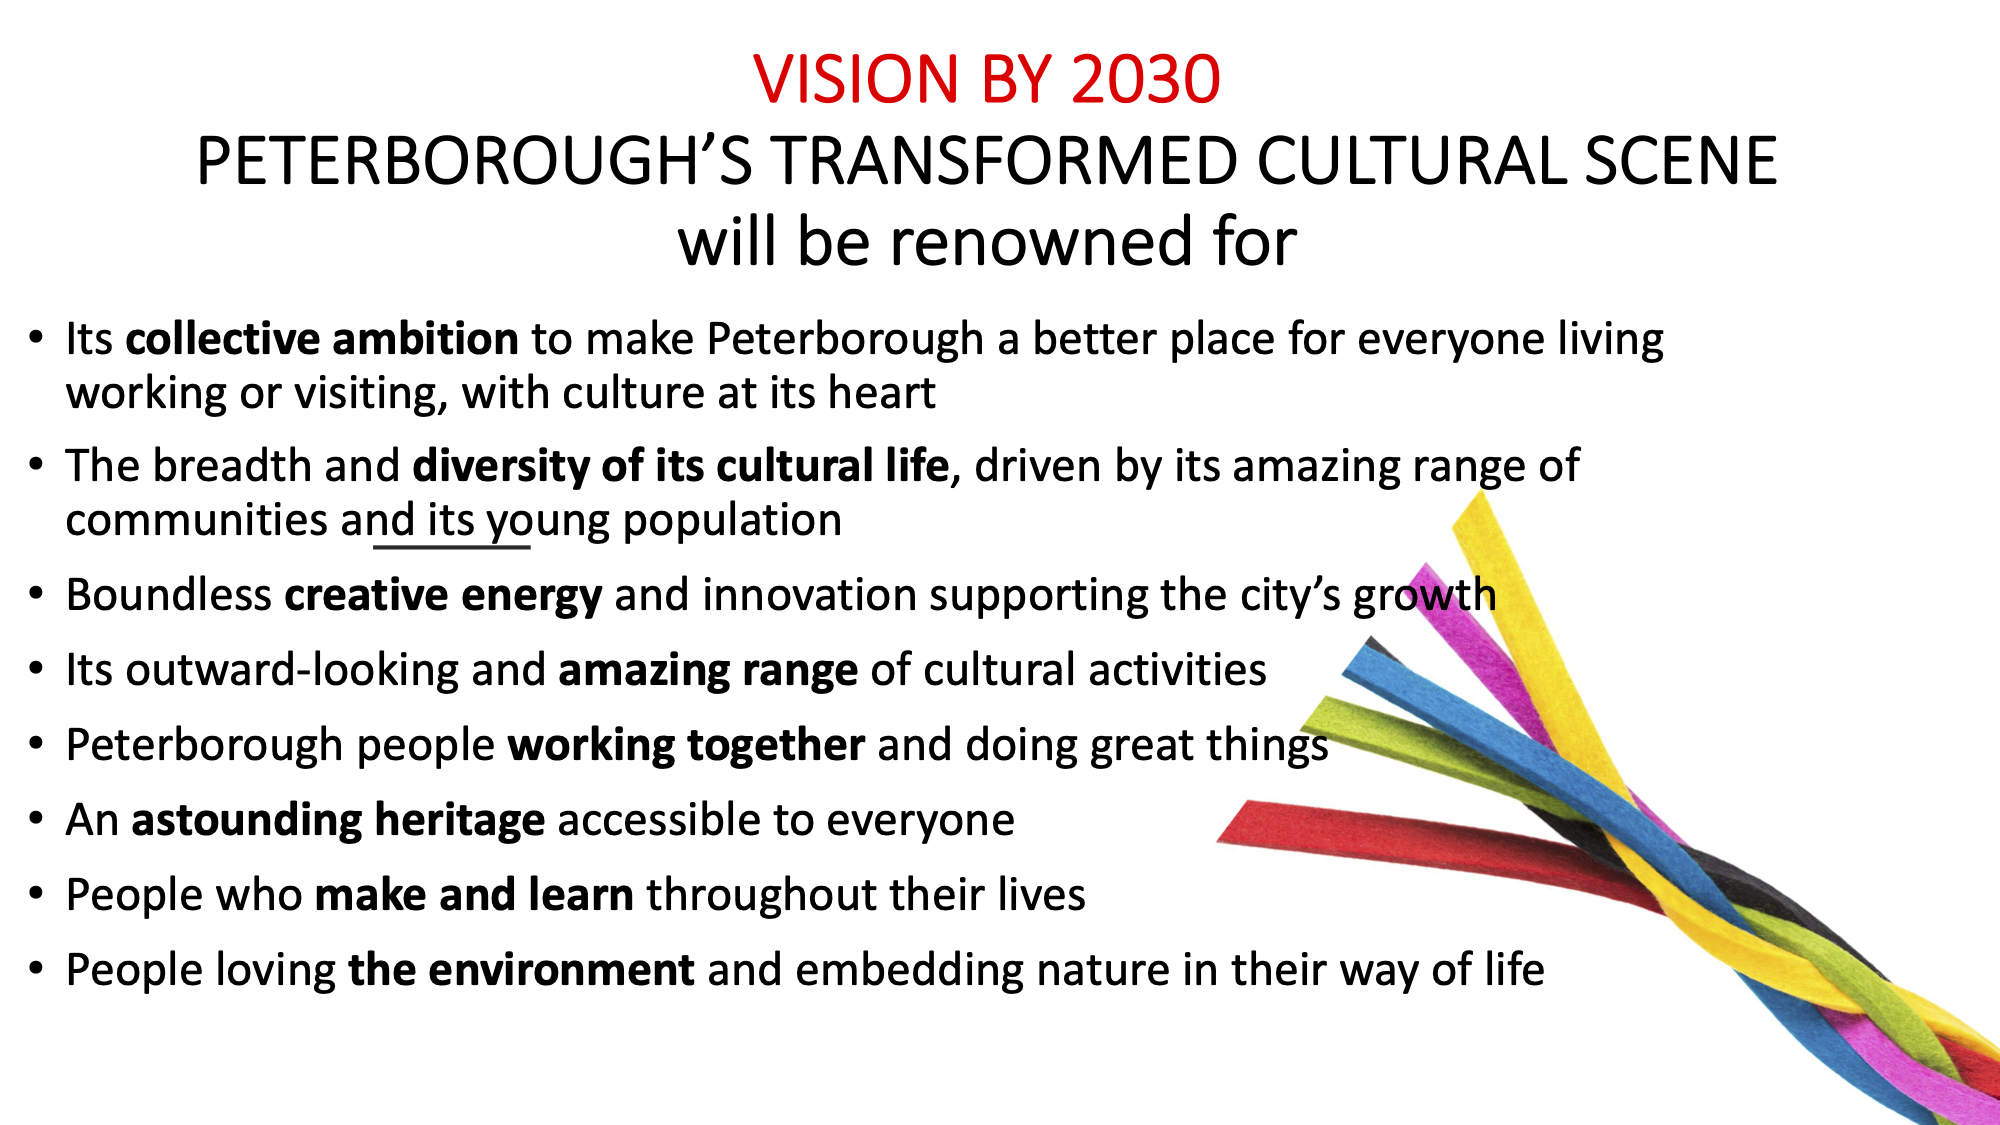 Ambitions for 2030 Peterborough Culture